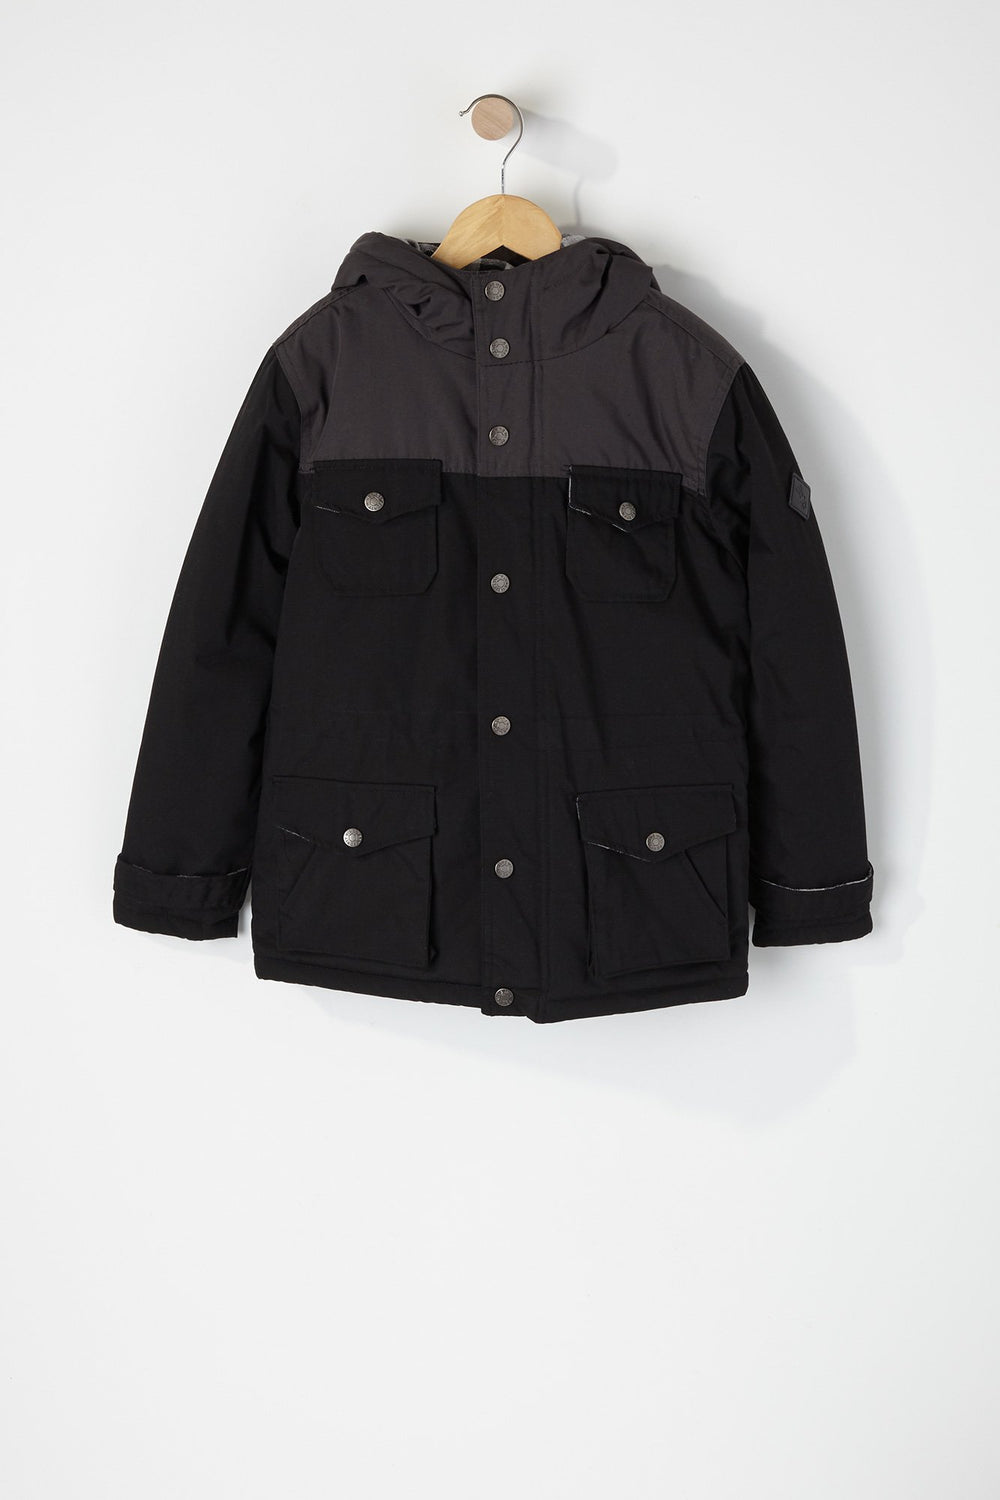 West49 Boys Colour Block 4-Pocket Parka Black